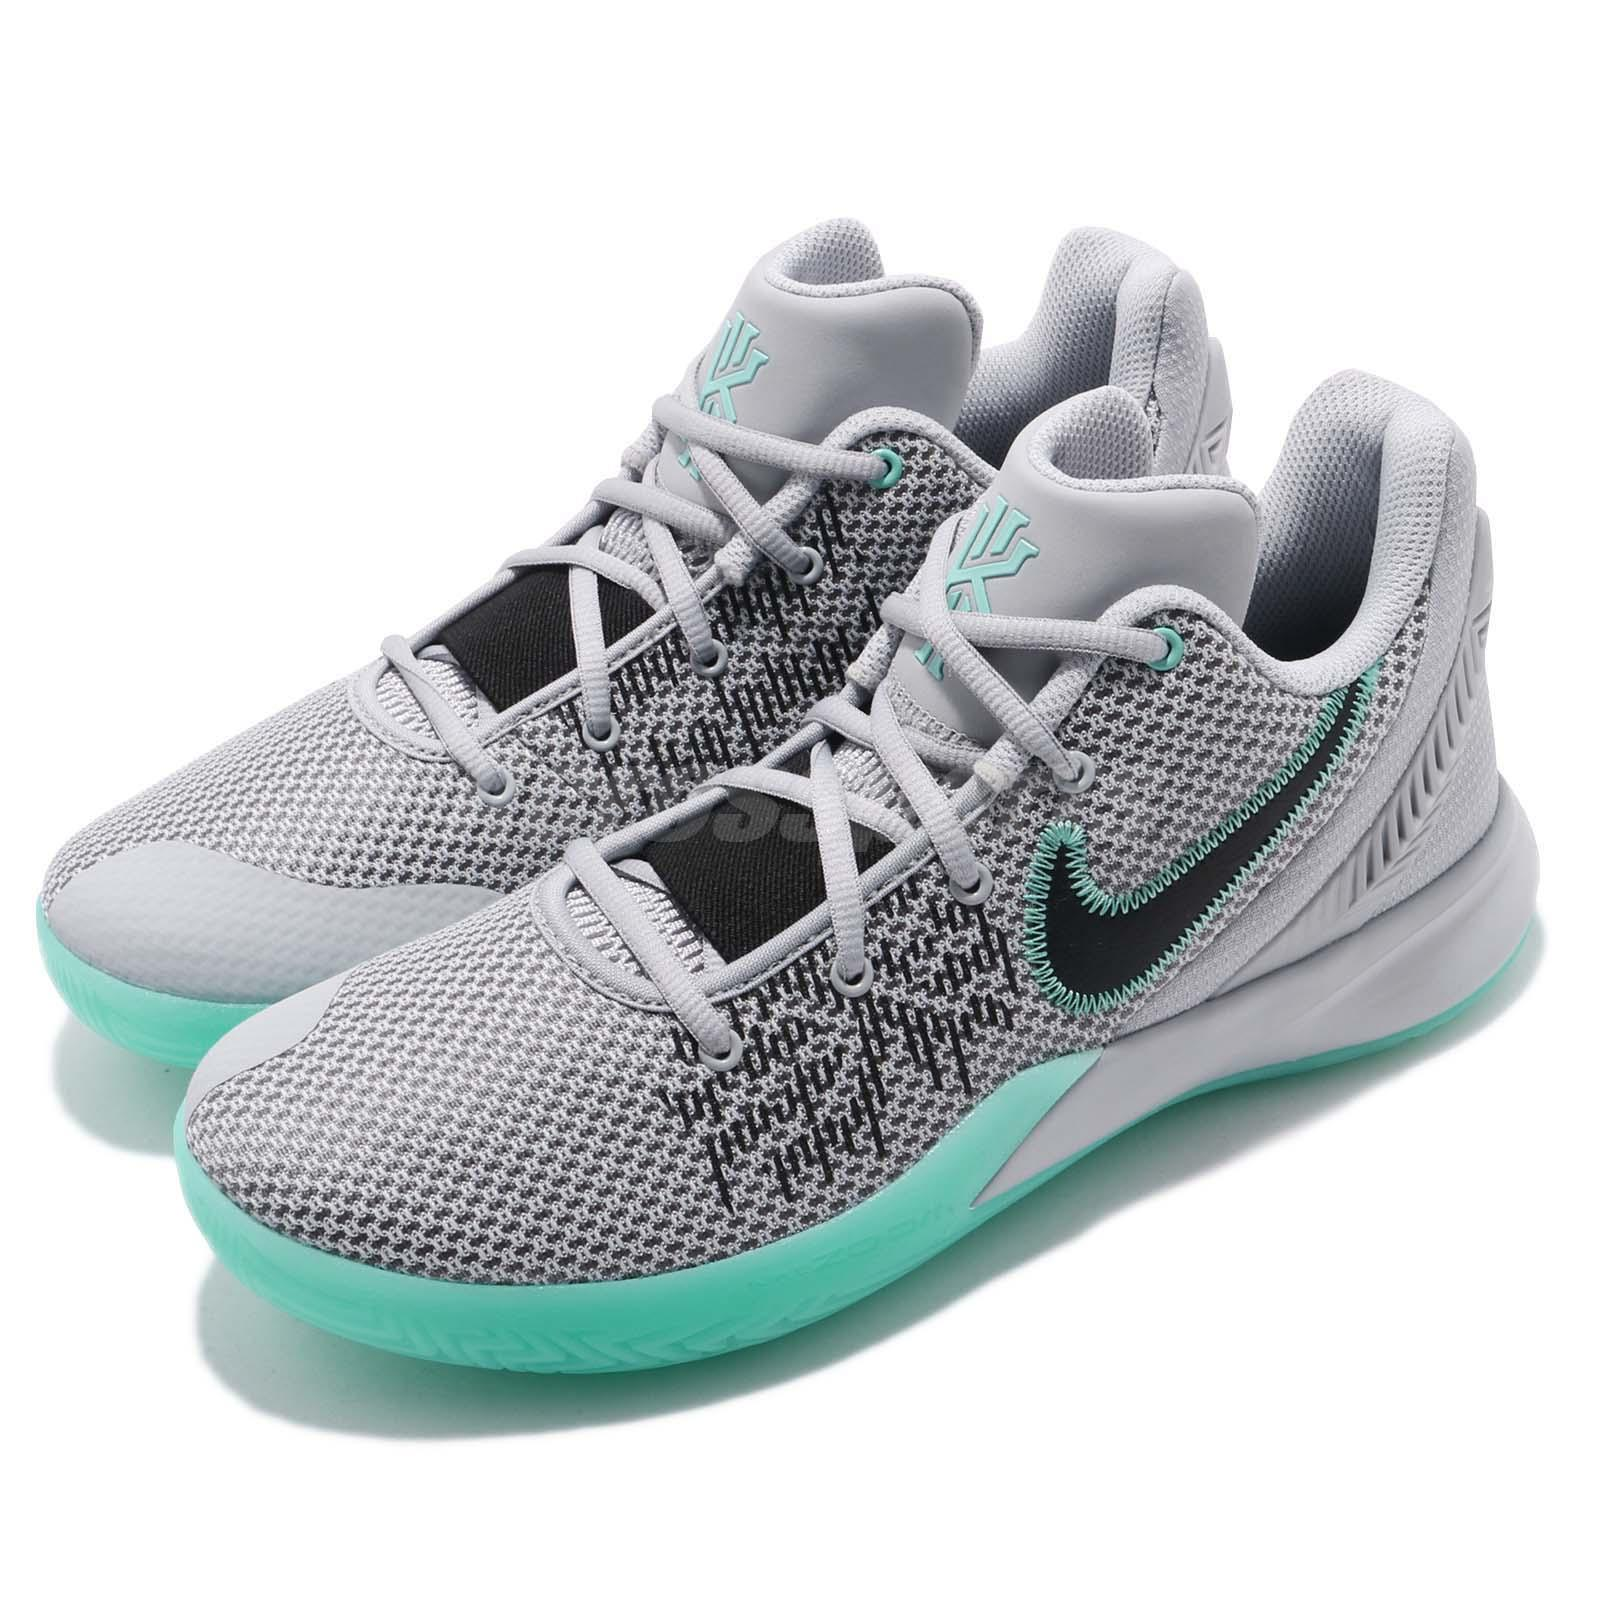 cheaper 9ff15 cb33f Details about Nike Kyrie Flytrap II EP 2 Irving Grey Black Men Basketball  Shoes AO4438-003